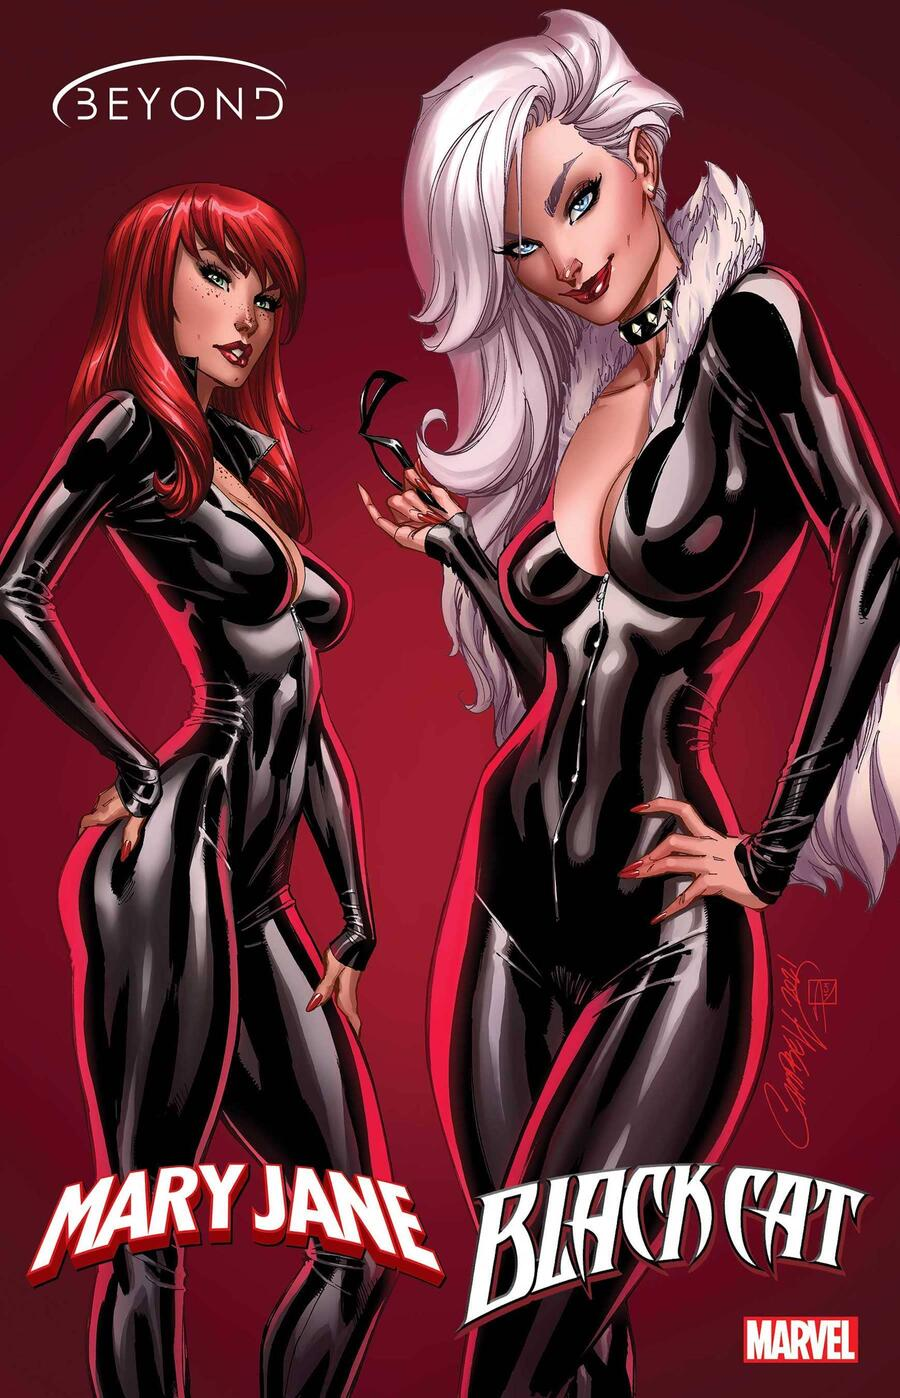 MARY JANE & BLACK CAT: BEYOND #1 cover by J. Scott Campbell